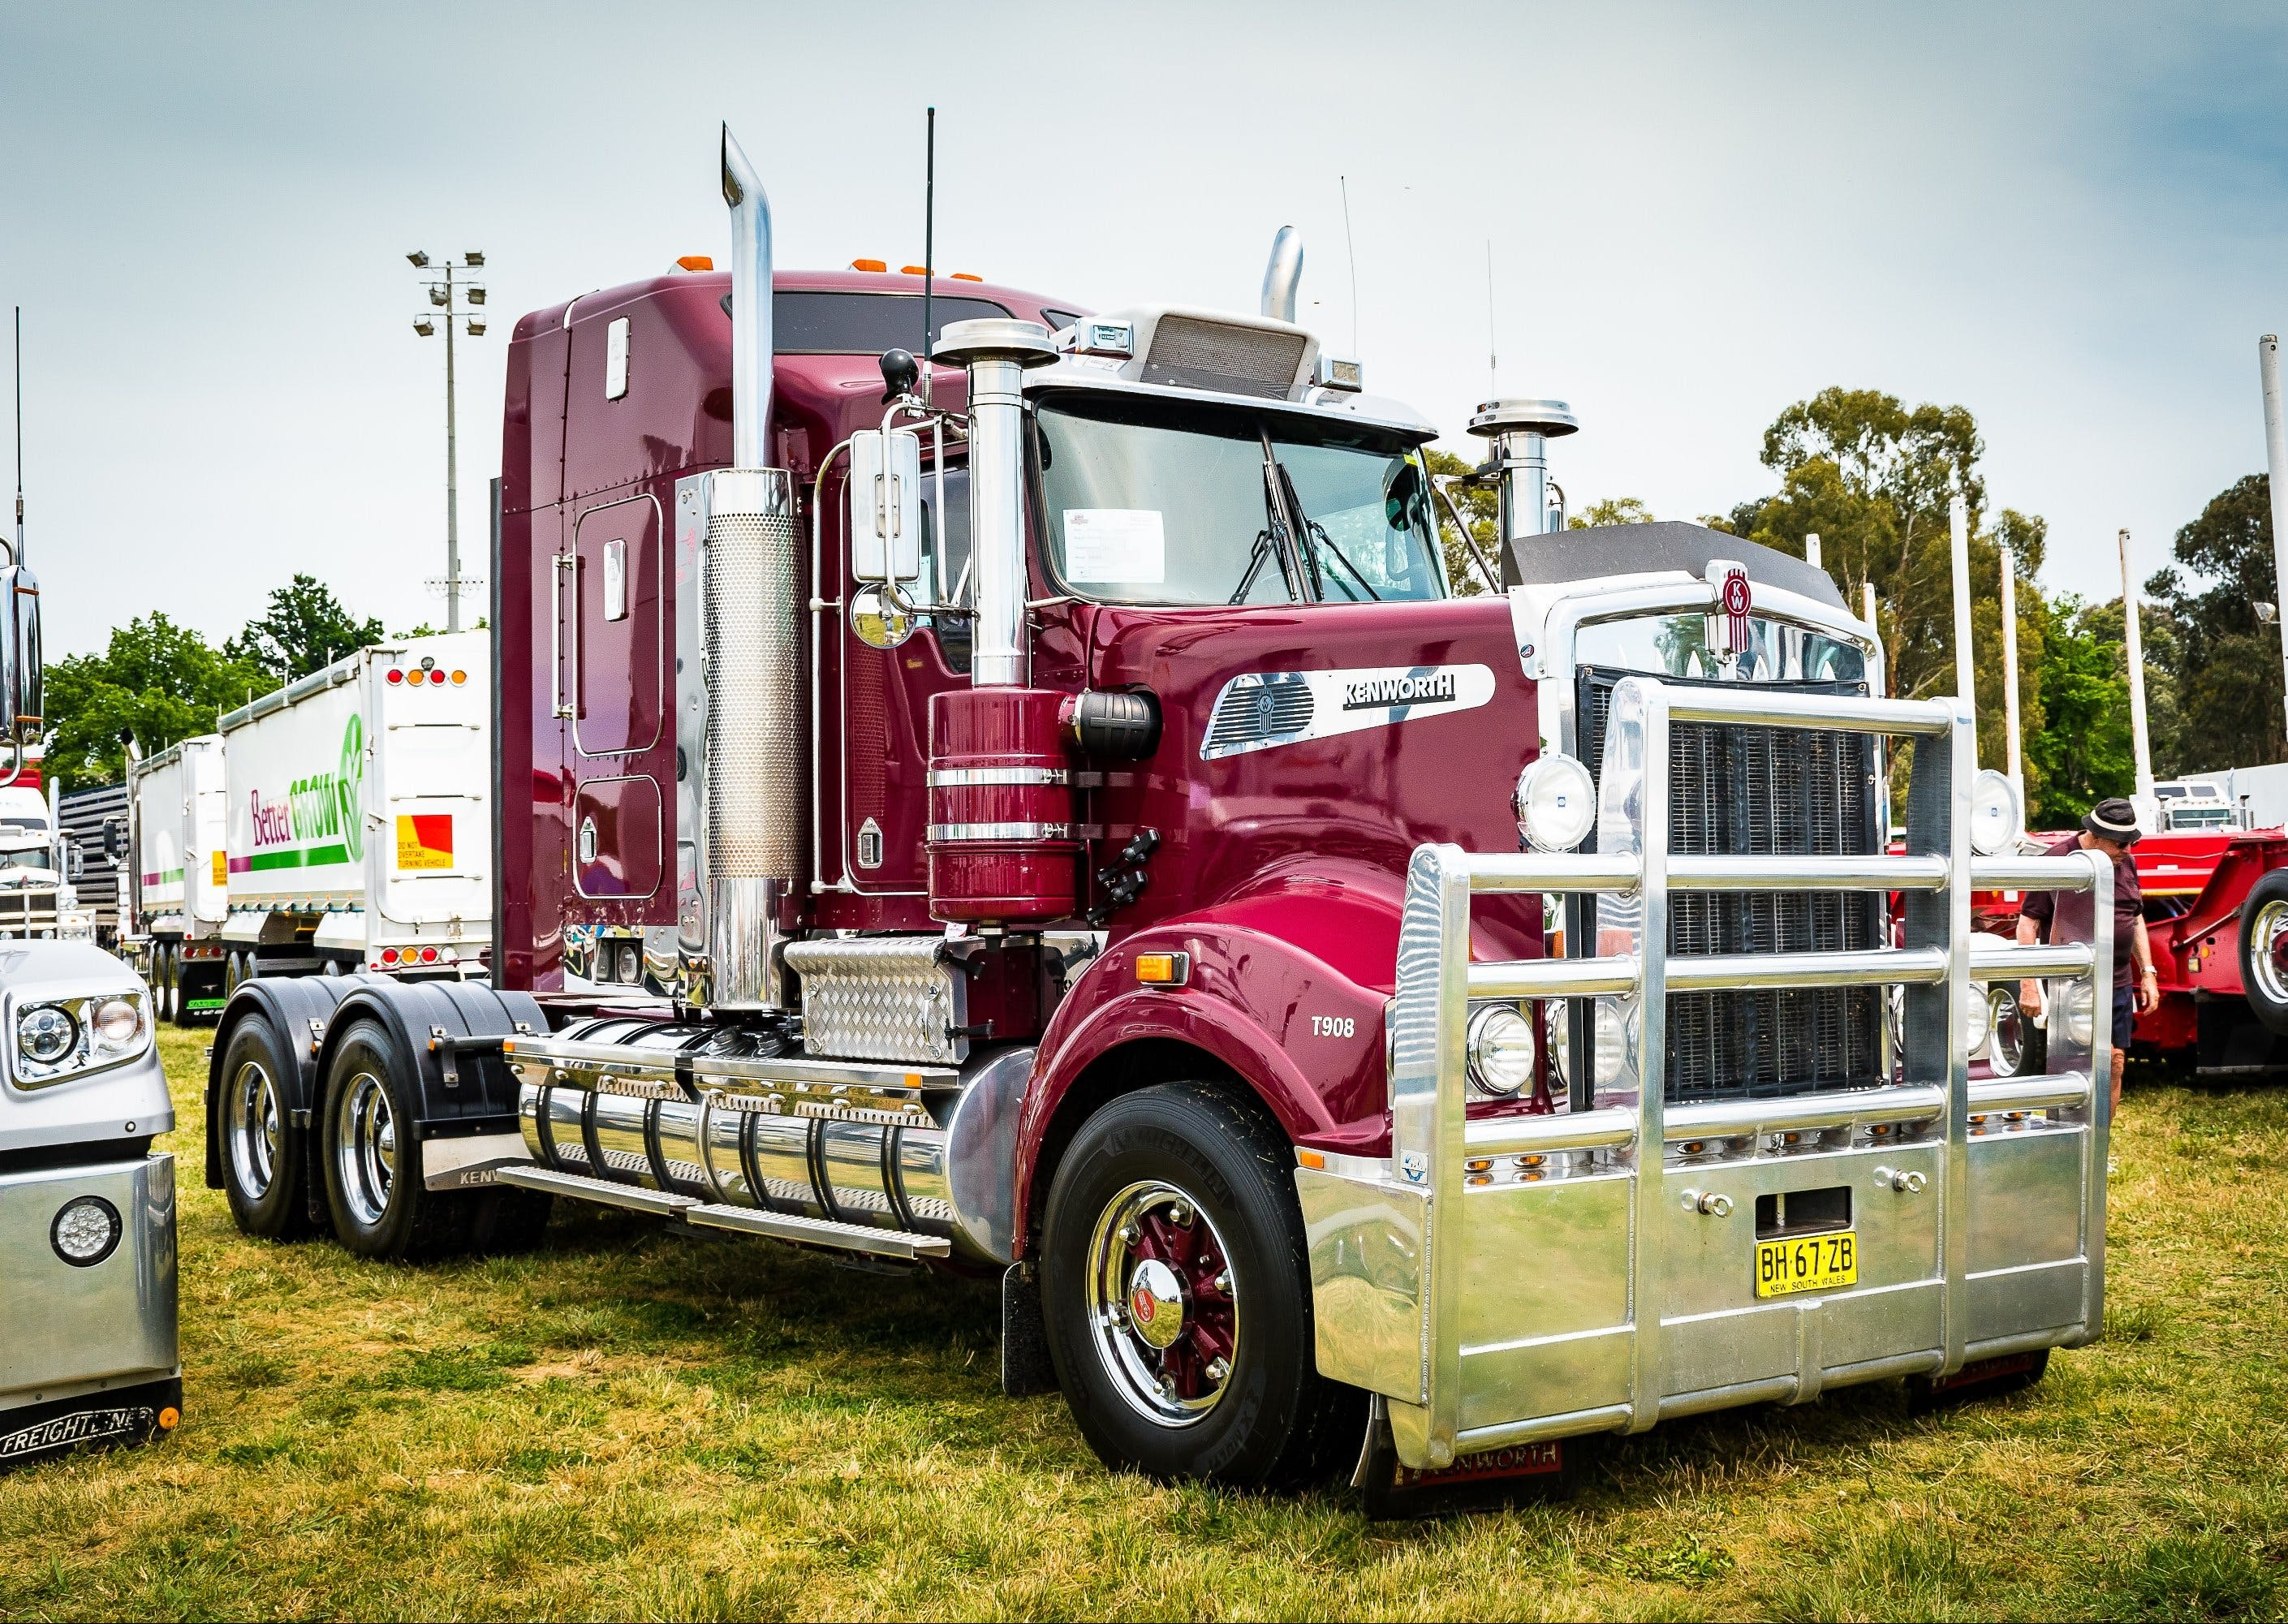 Dane Ballinger Memorial Truck Show - Accommodation Tasmania